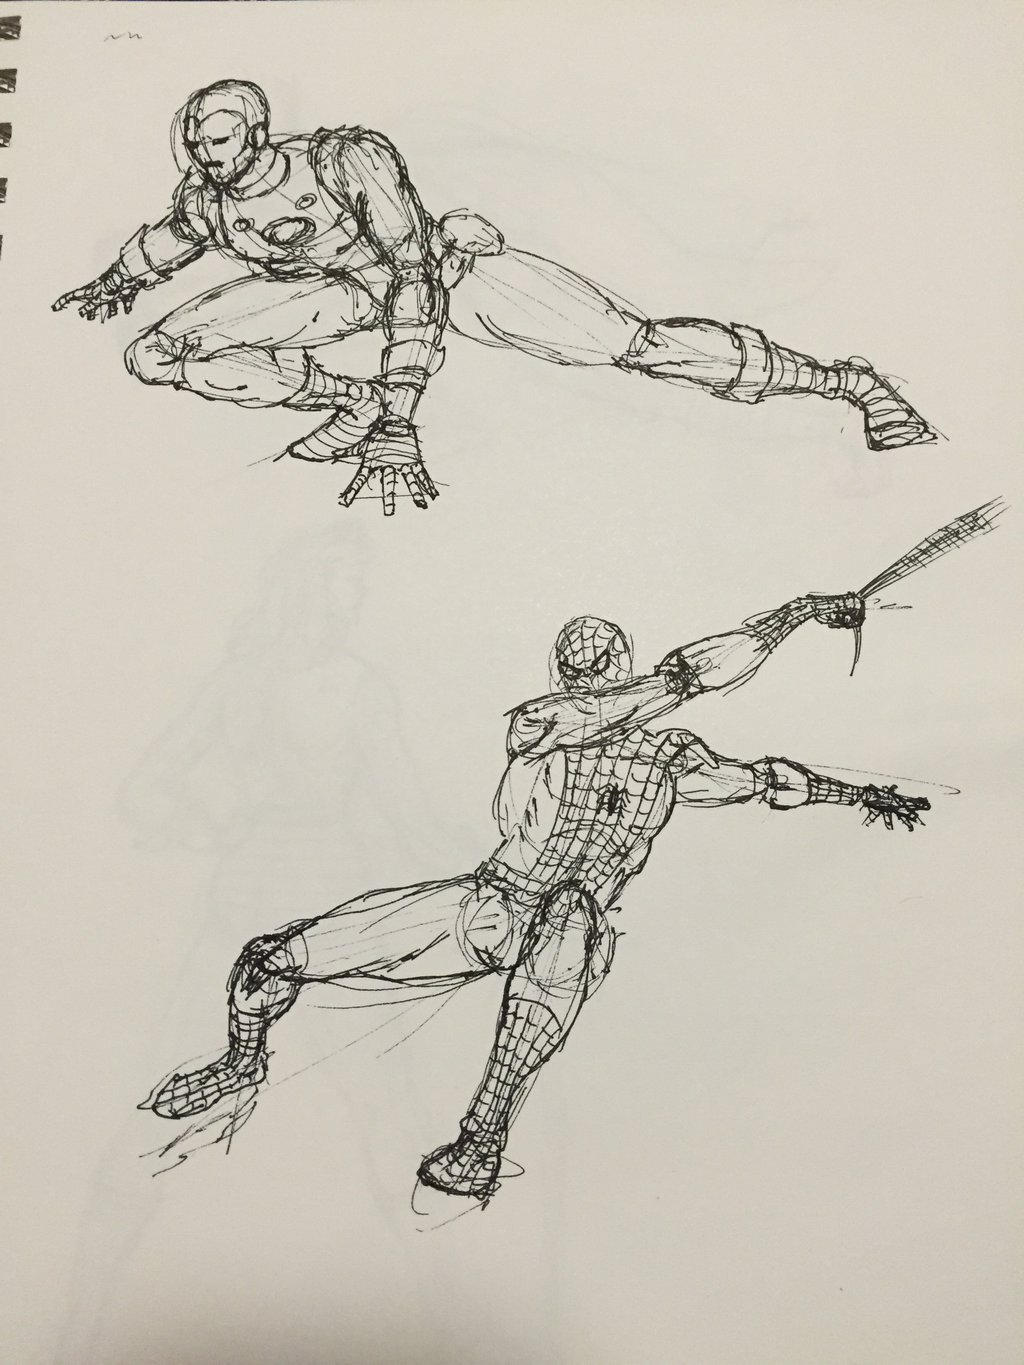 Spiderman and Ironman by Artfoundry